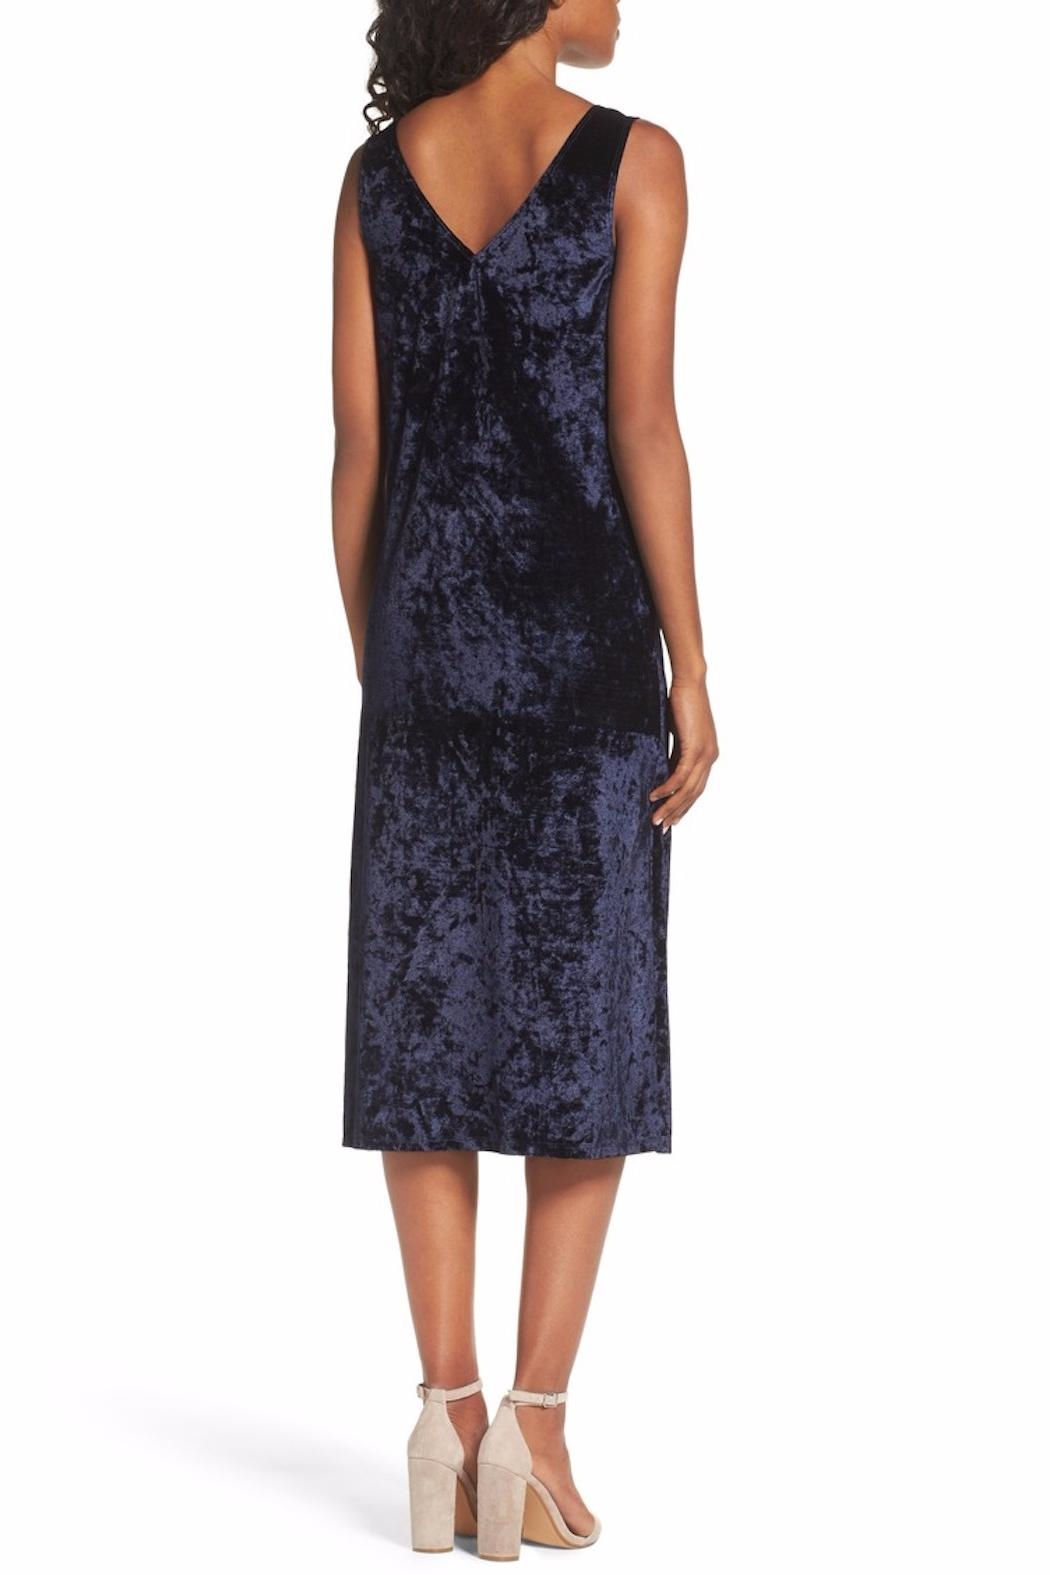 BB Dakota Blue Velvet Midi Dress - Front Full Image